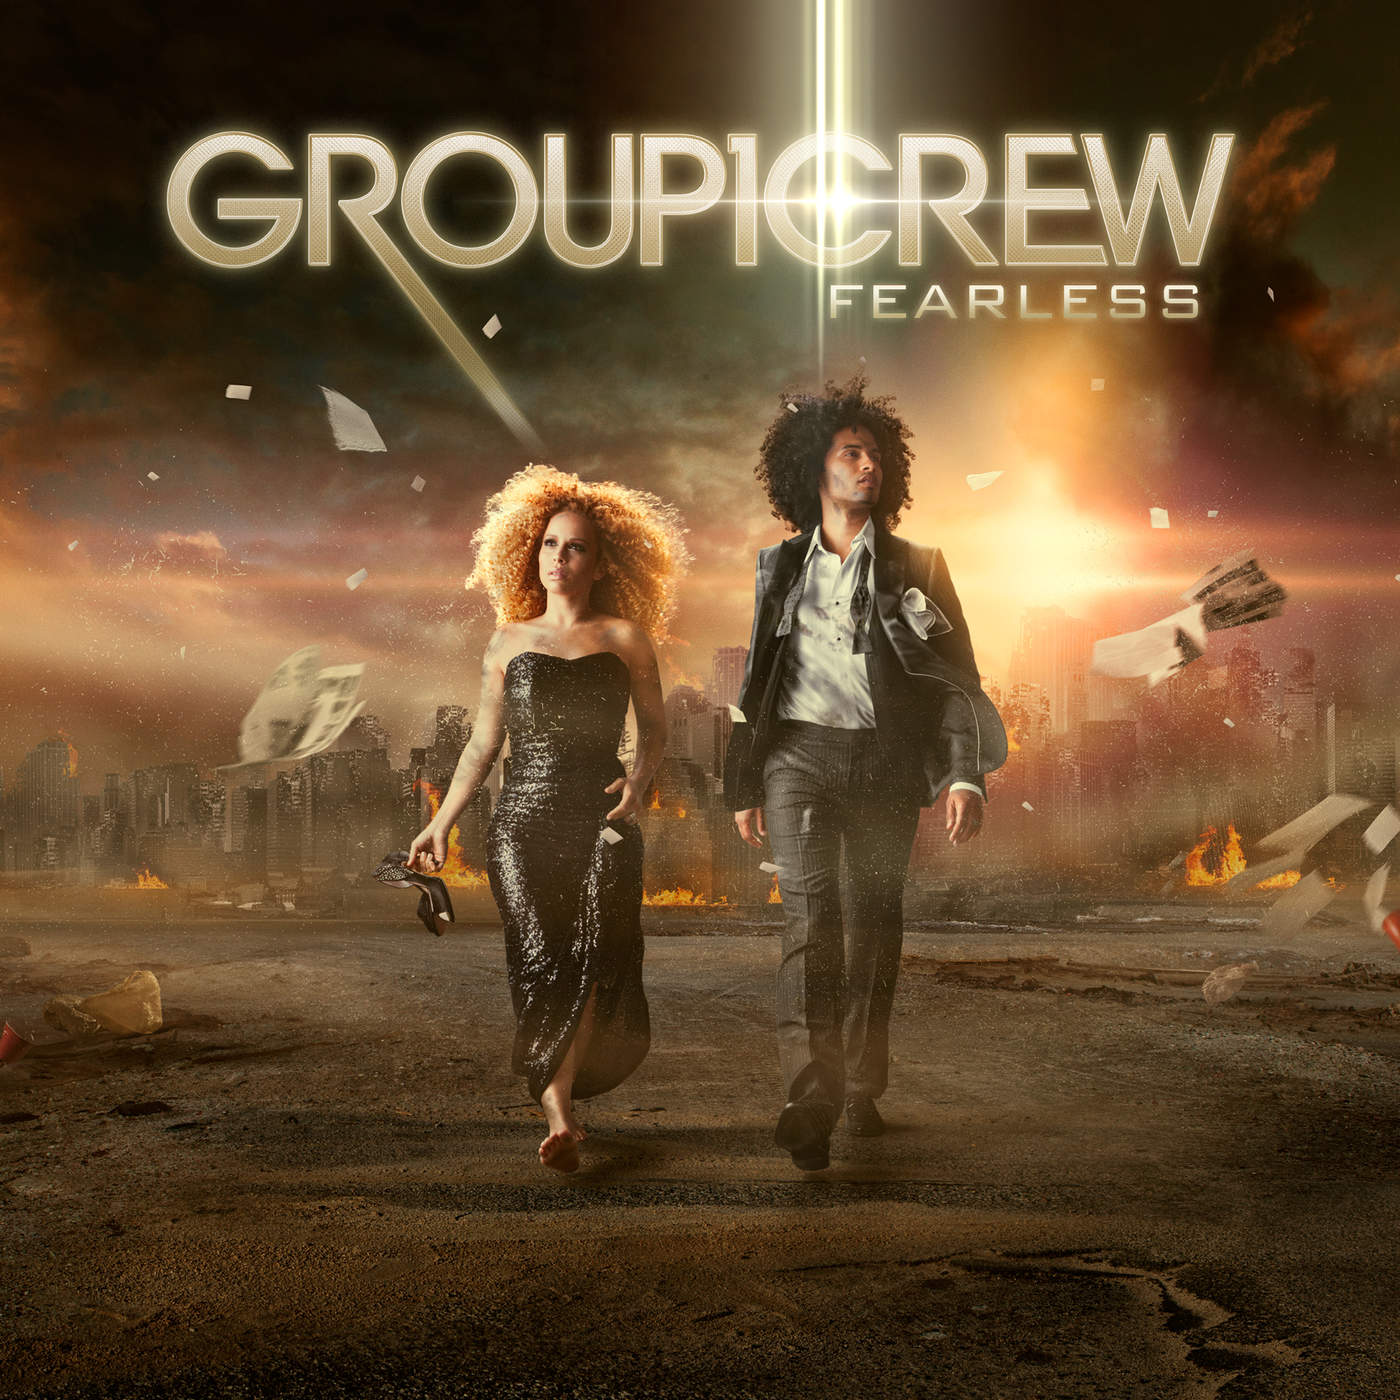 Art for Fearless by Group 1 Crew